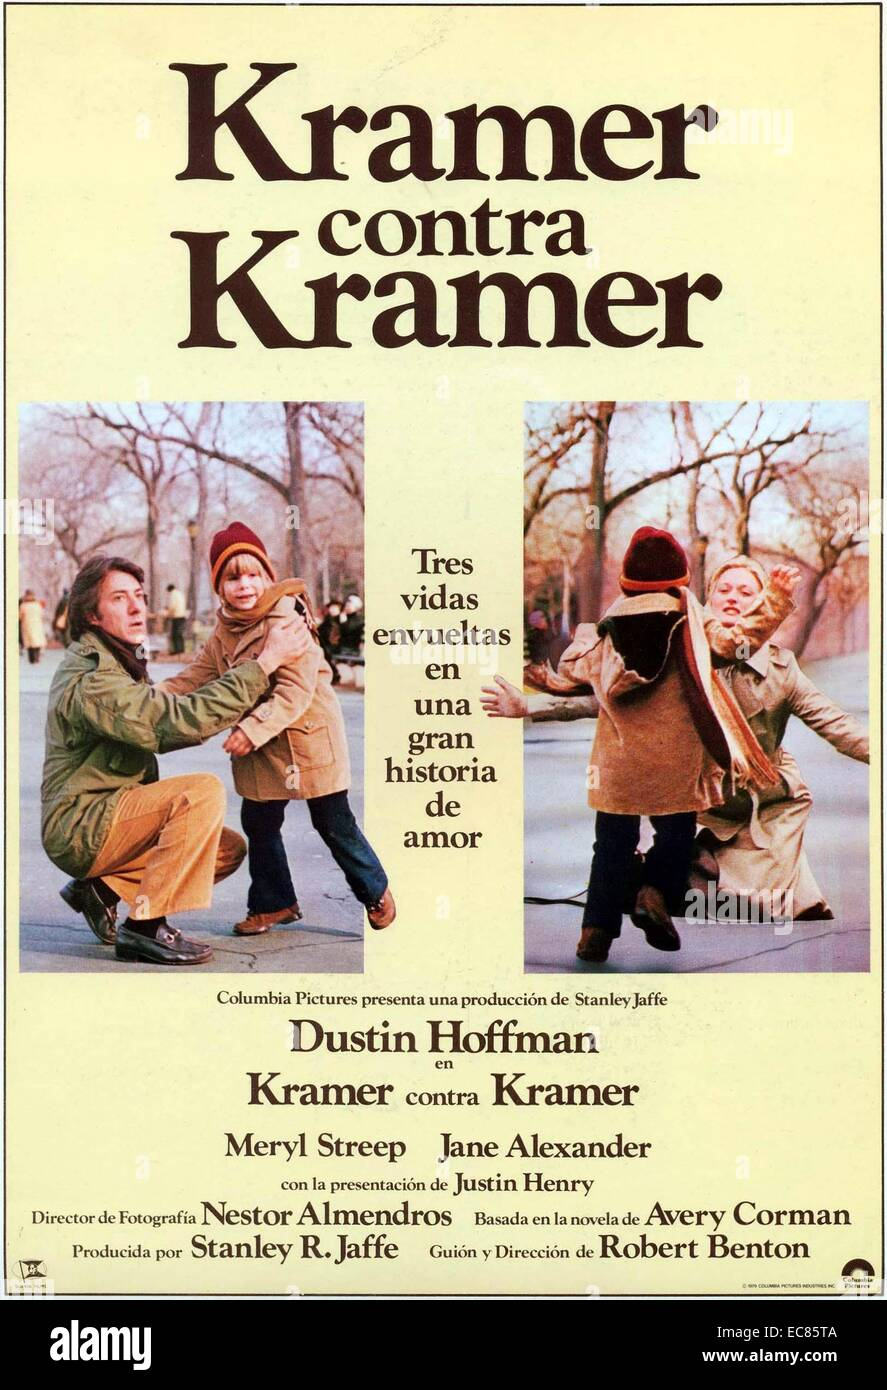 Kramer vs. Kramer is a 1979 American drama film adapted by Robert Benton from the novel by Avery Corman; and directed - Stock Image